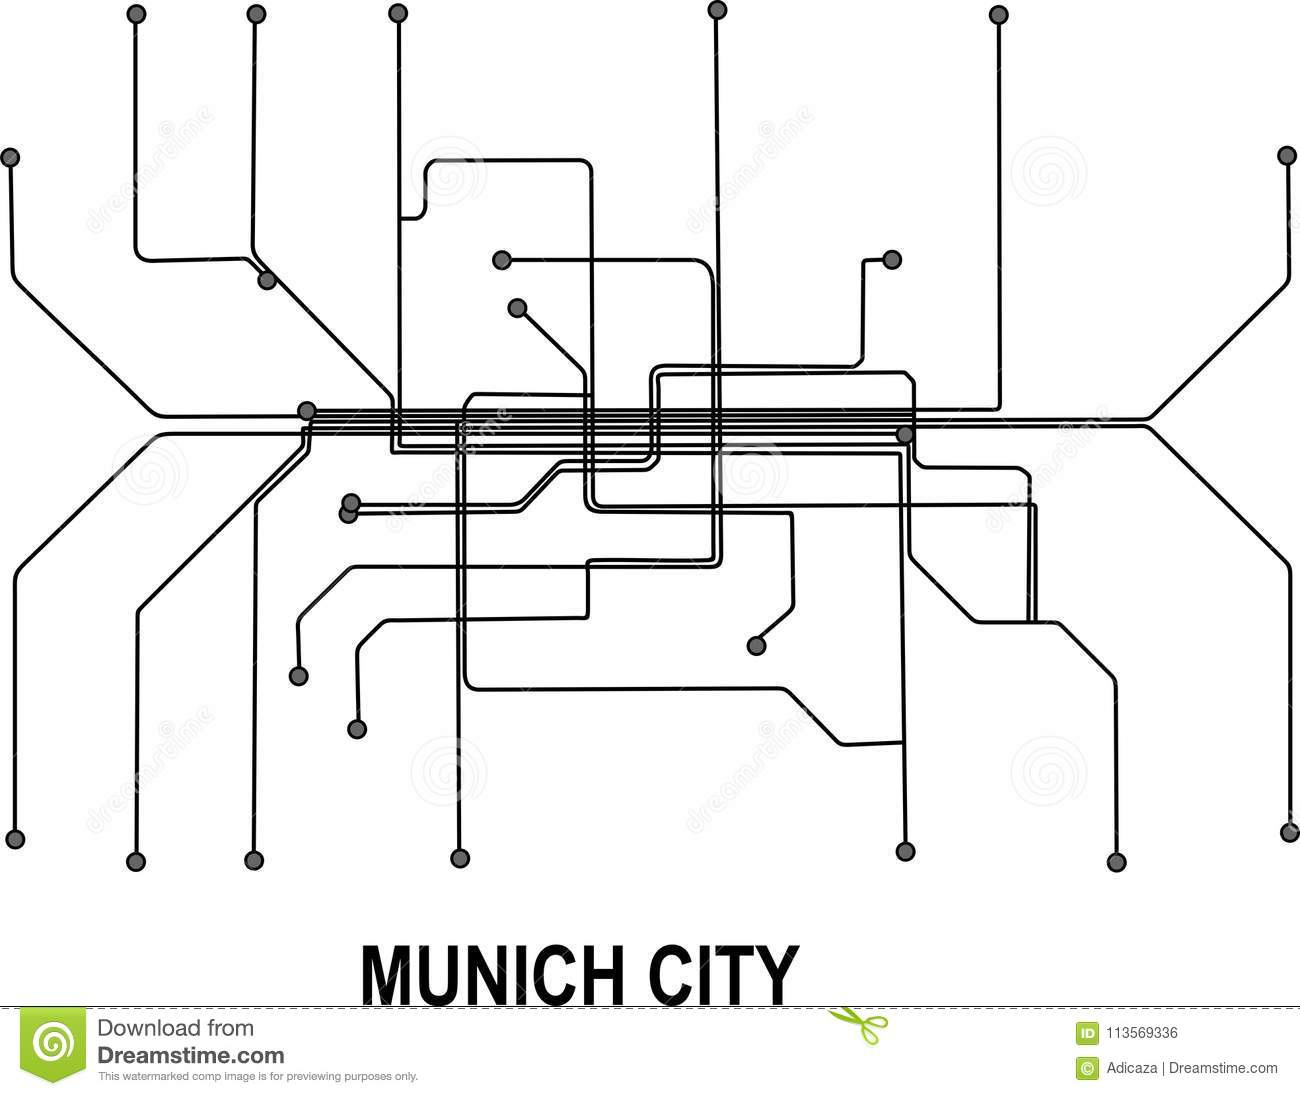 Munich Subway Map.Munich City Map Stock Vector Illustration Of Underground 113569336